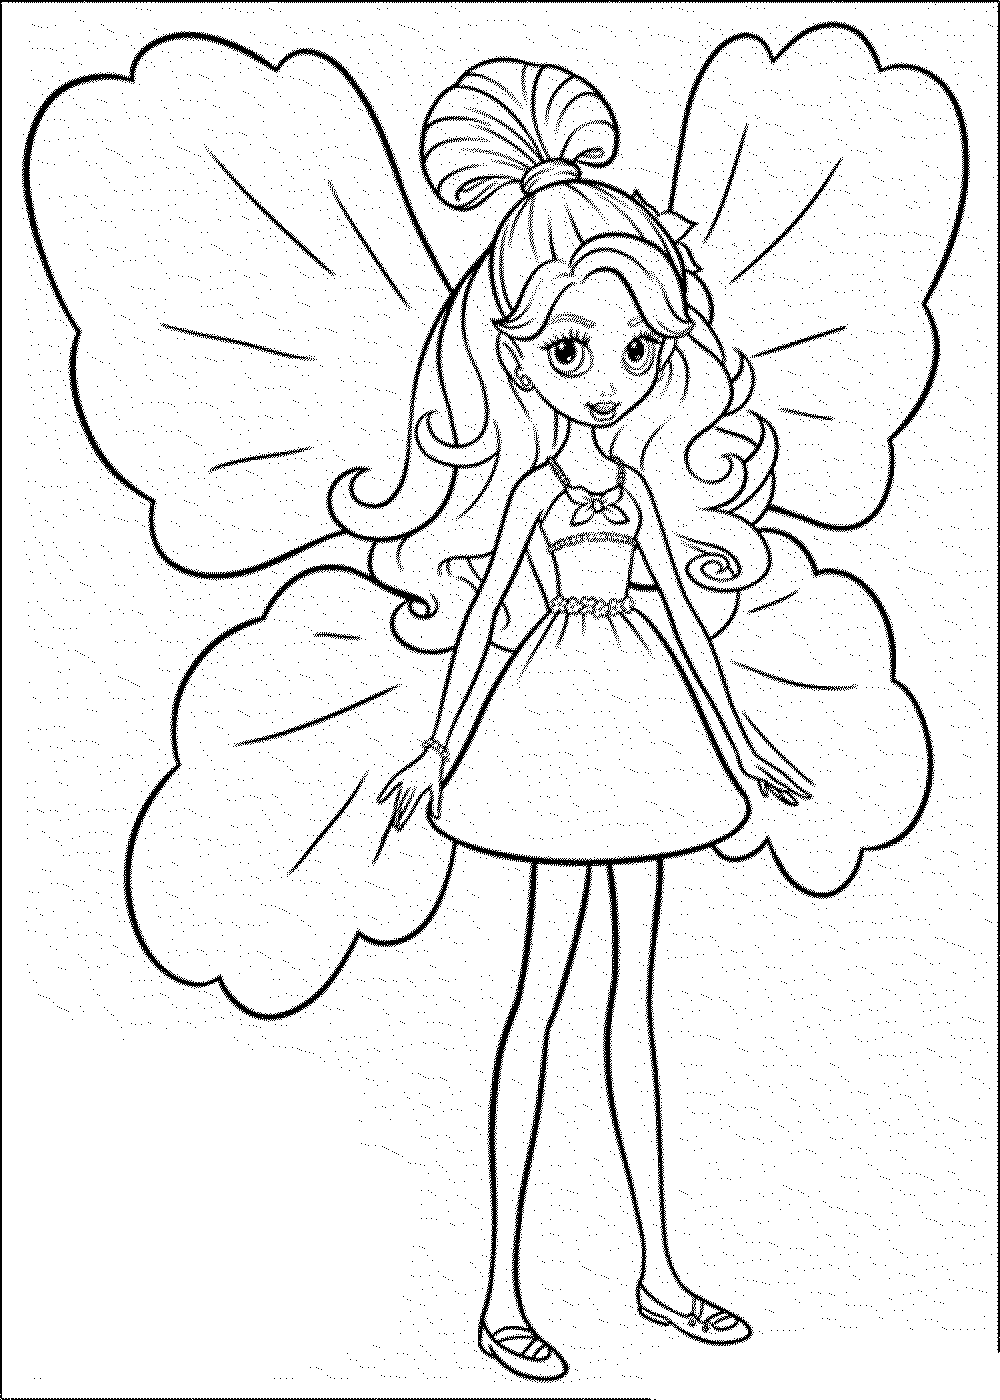 Colouring in pages for girls butterflies - Cute Barbie Butterfly Coloring Page